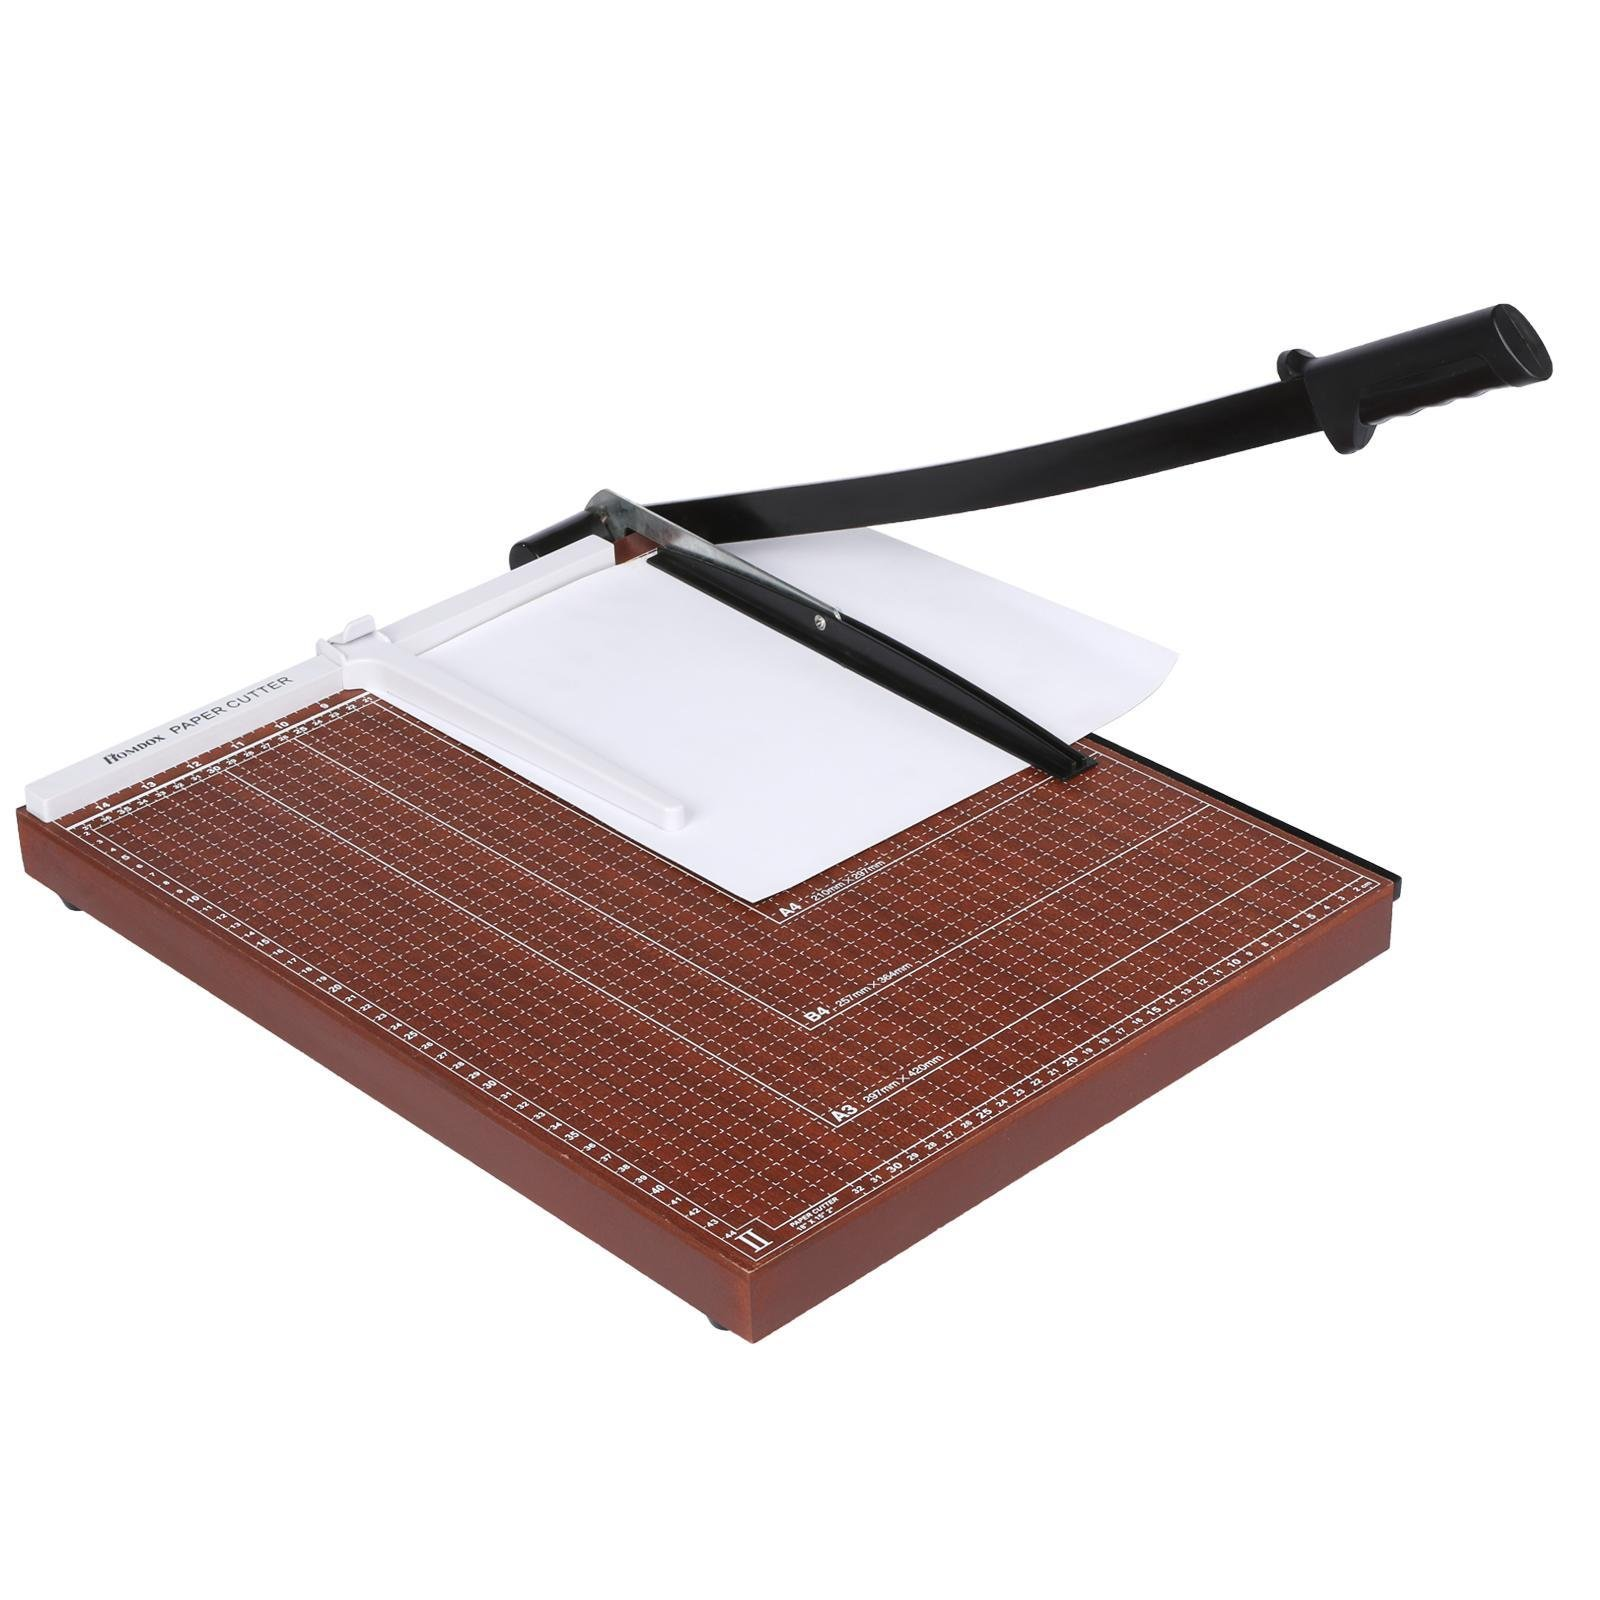 PEATAO A2-B7 Professional Paper Cutter Wood Base Guillotine Paper Trimmer for Home Office Red 12.7 x 9.9 x 1.2inch